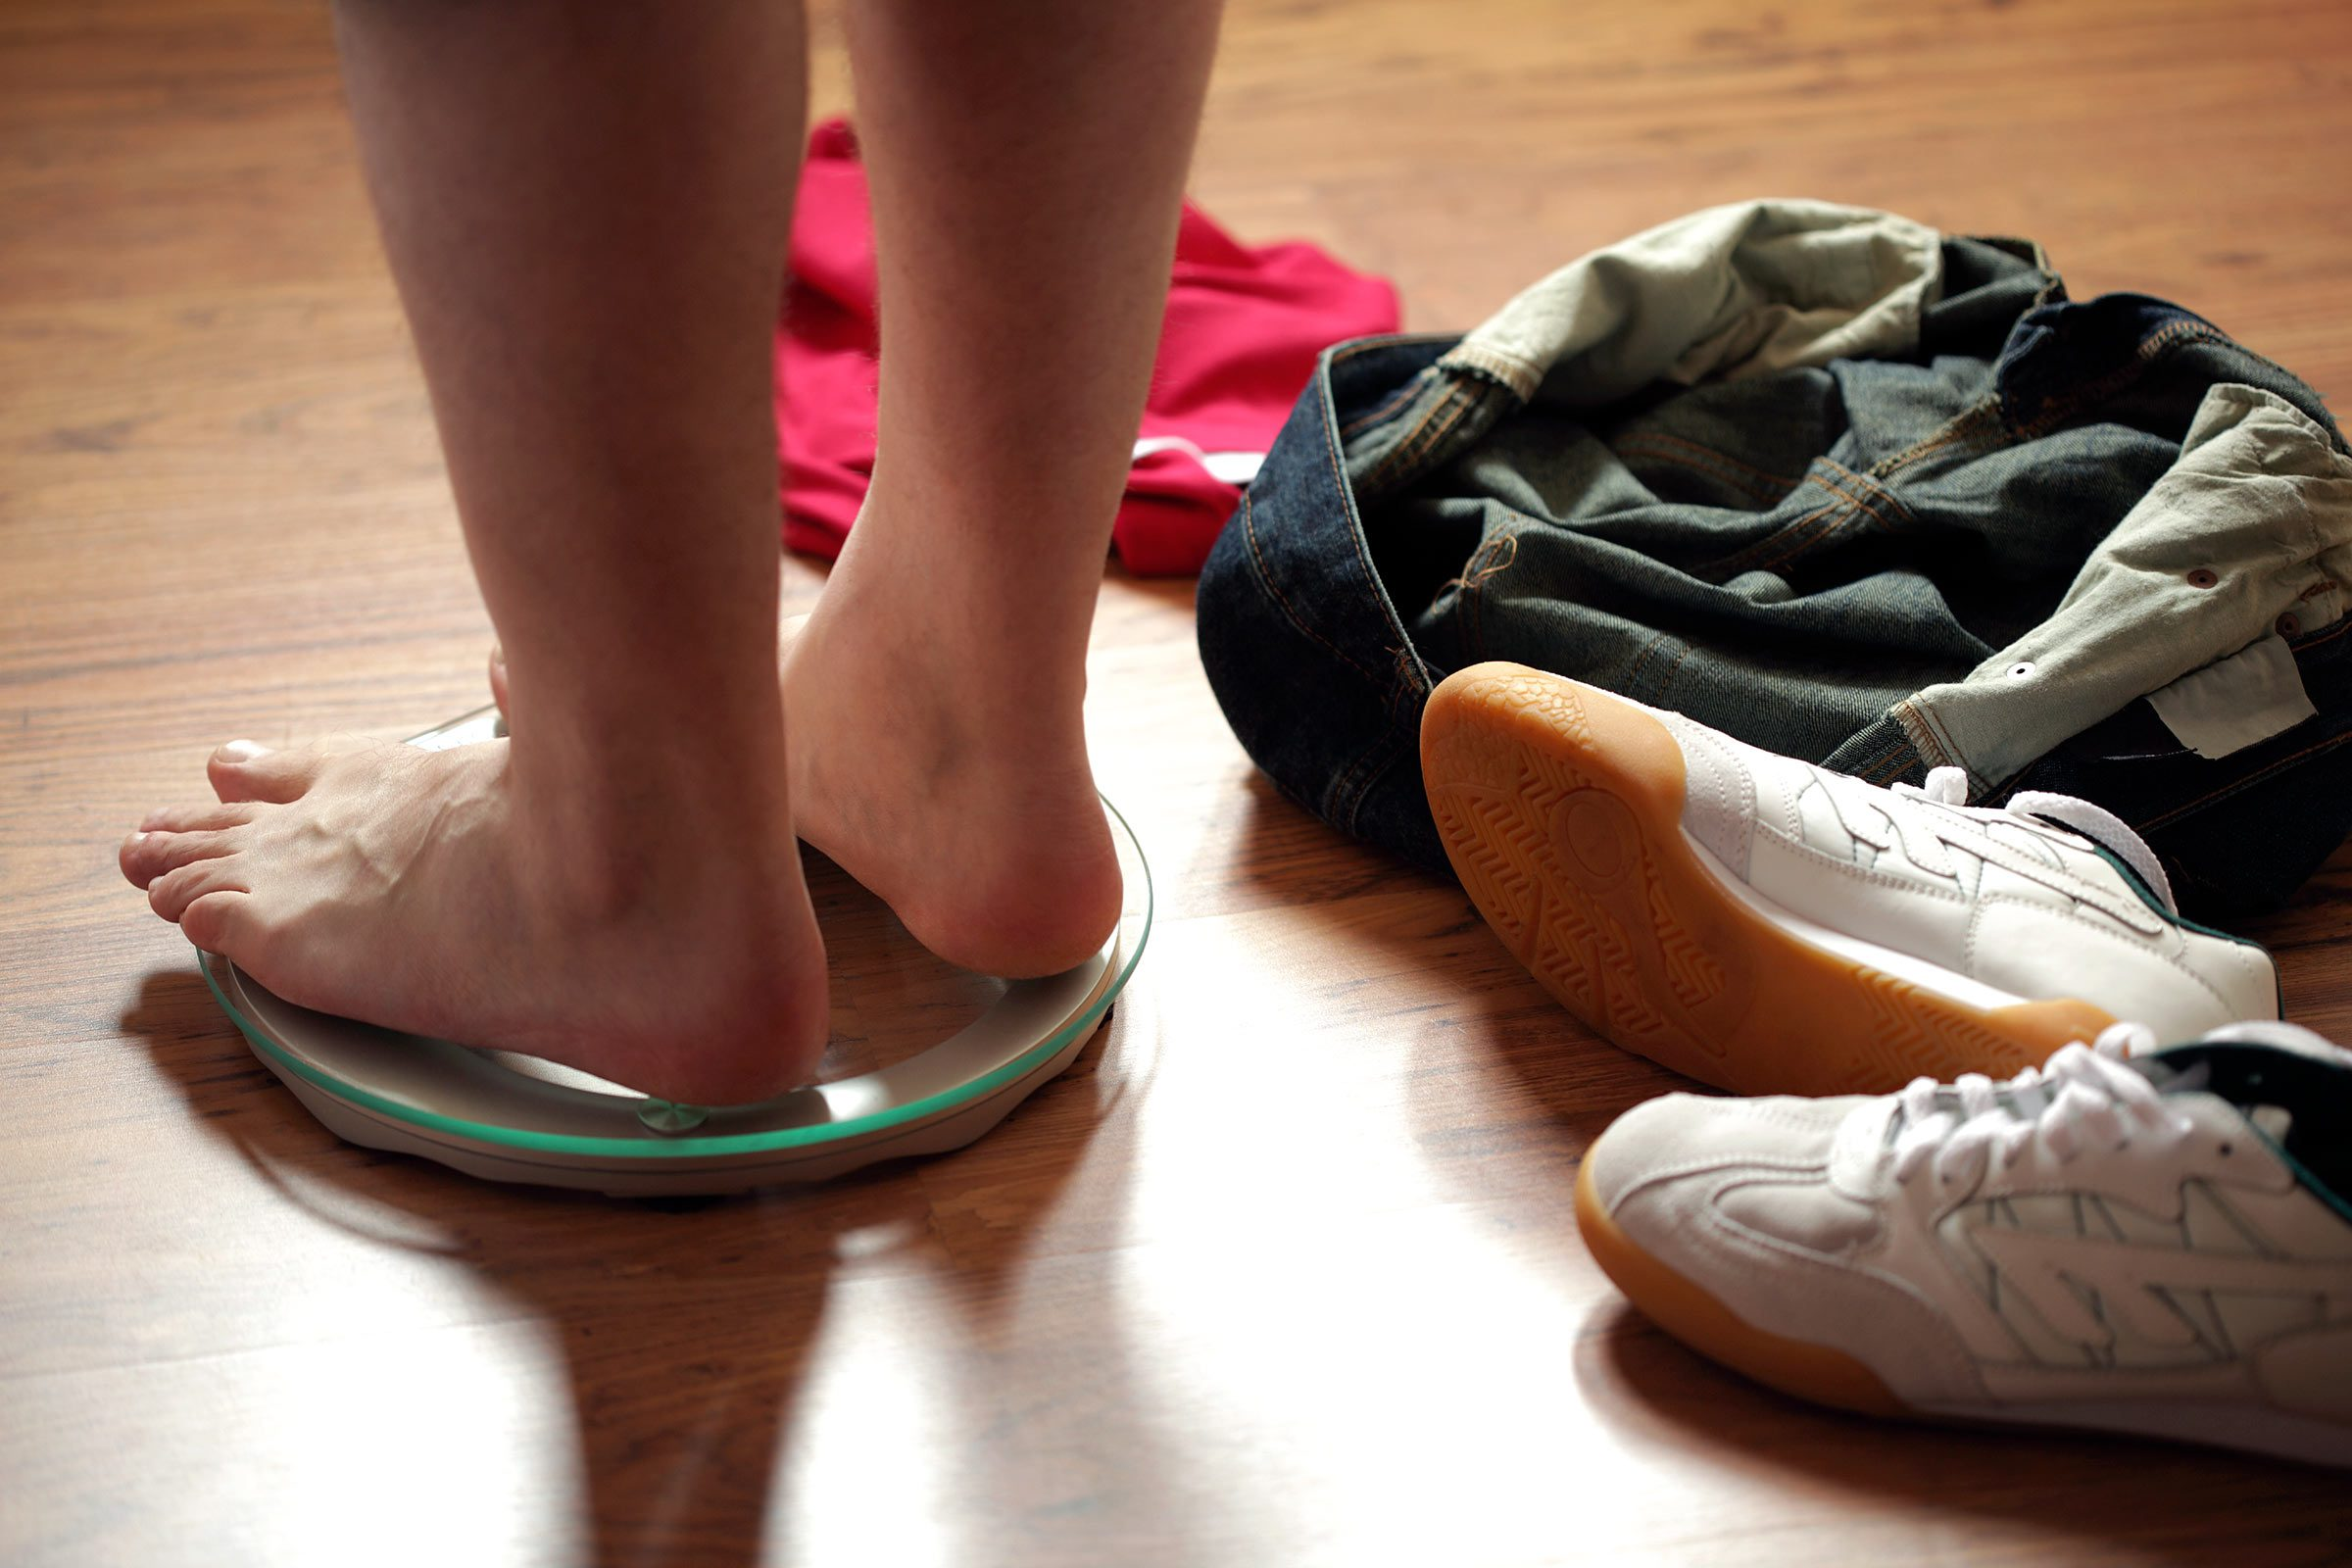 How to choose shoes in the online store, so as not to miscalculate with the size